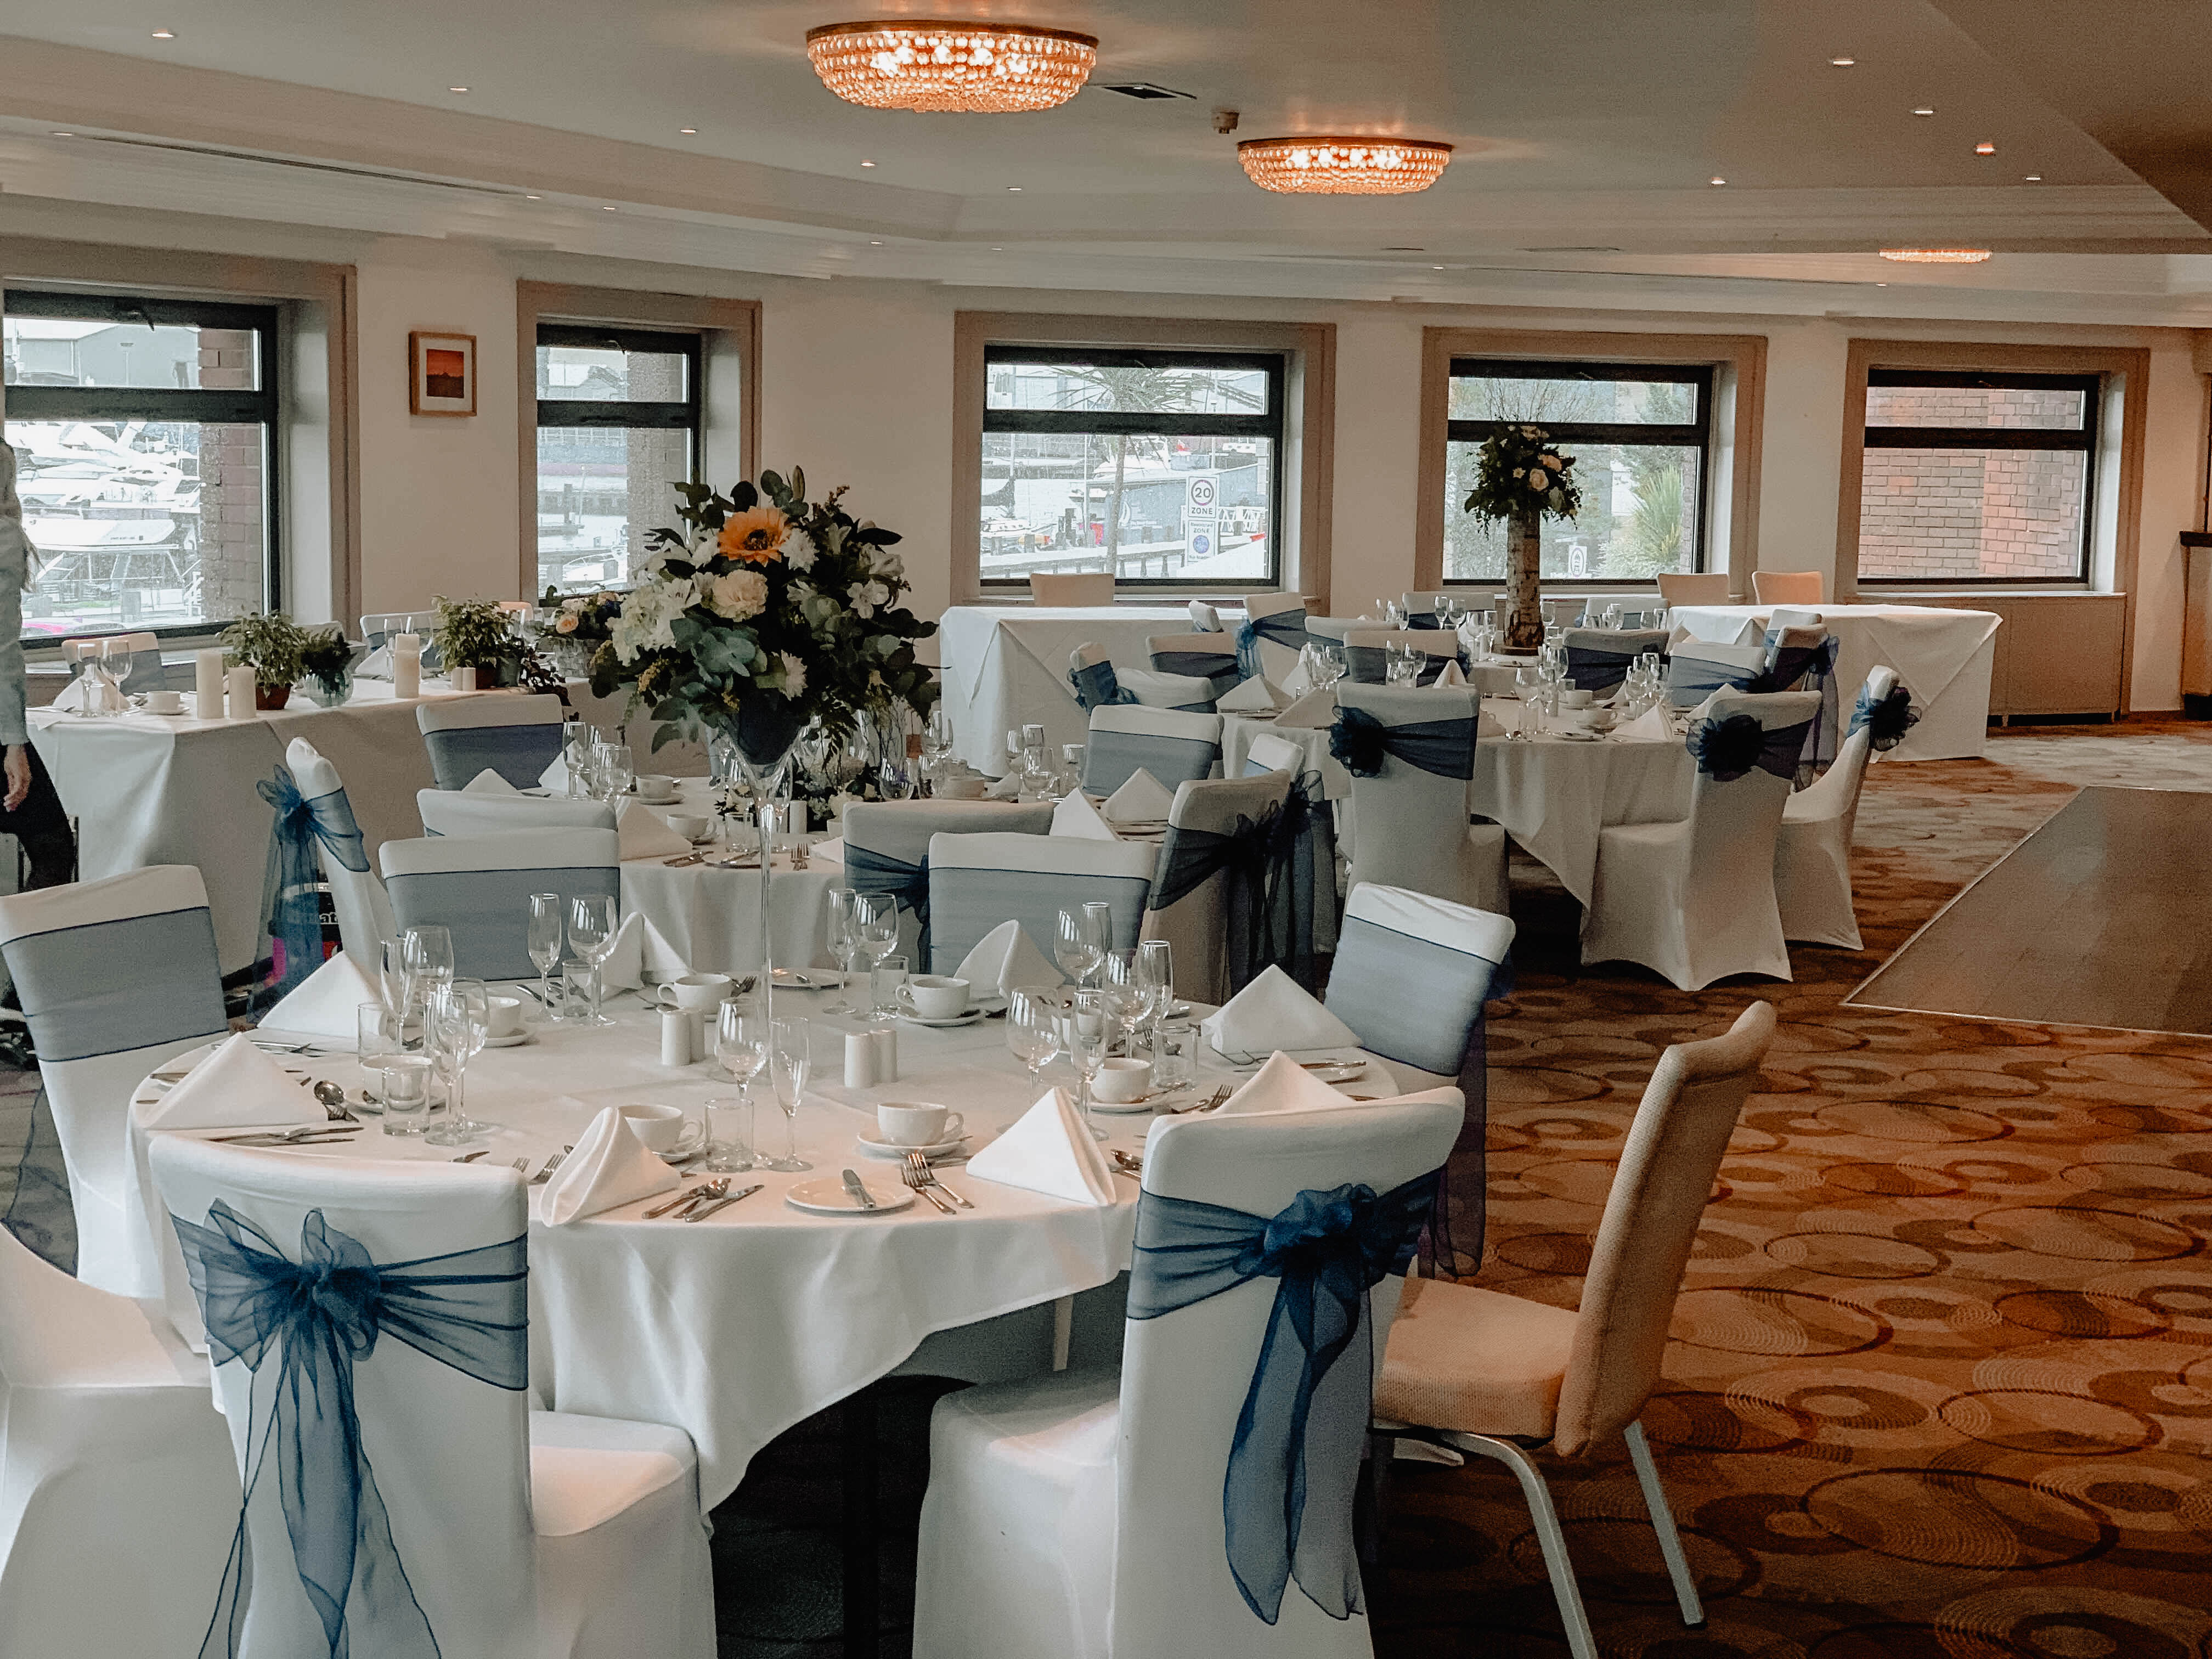 Excellent company who offer a variety of decorations - very flexible to all couples needs!